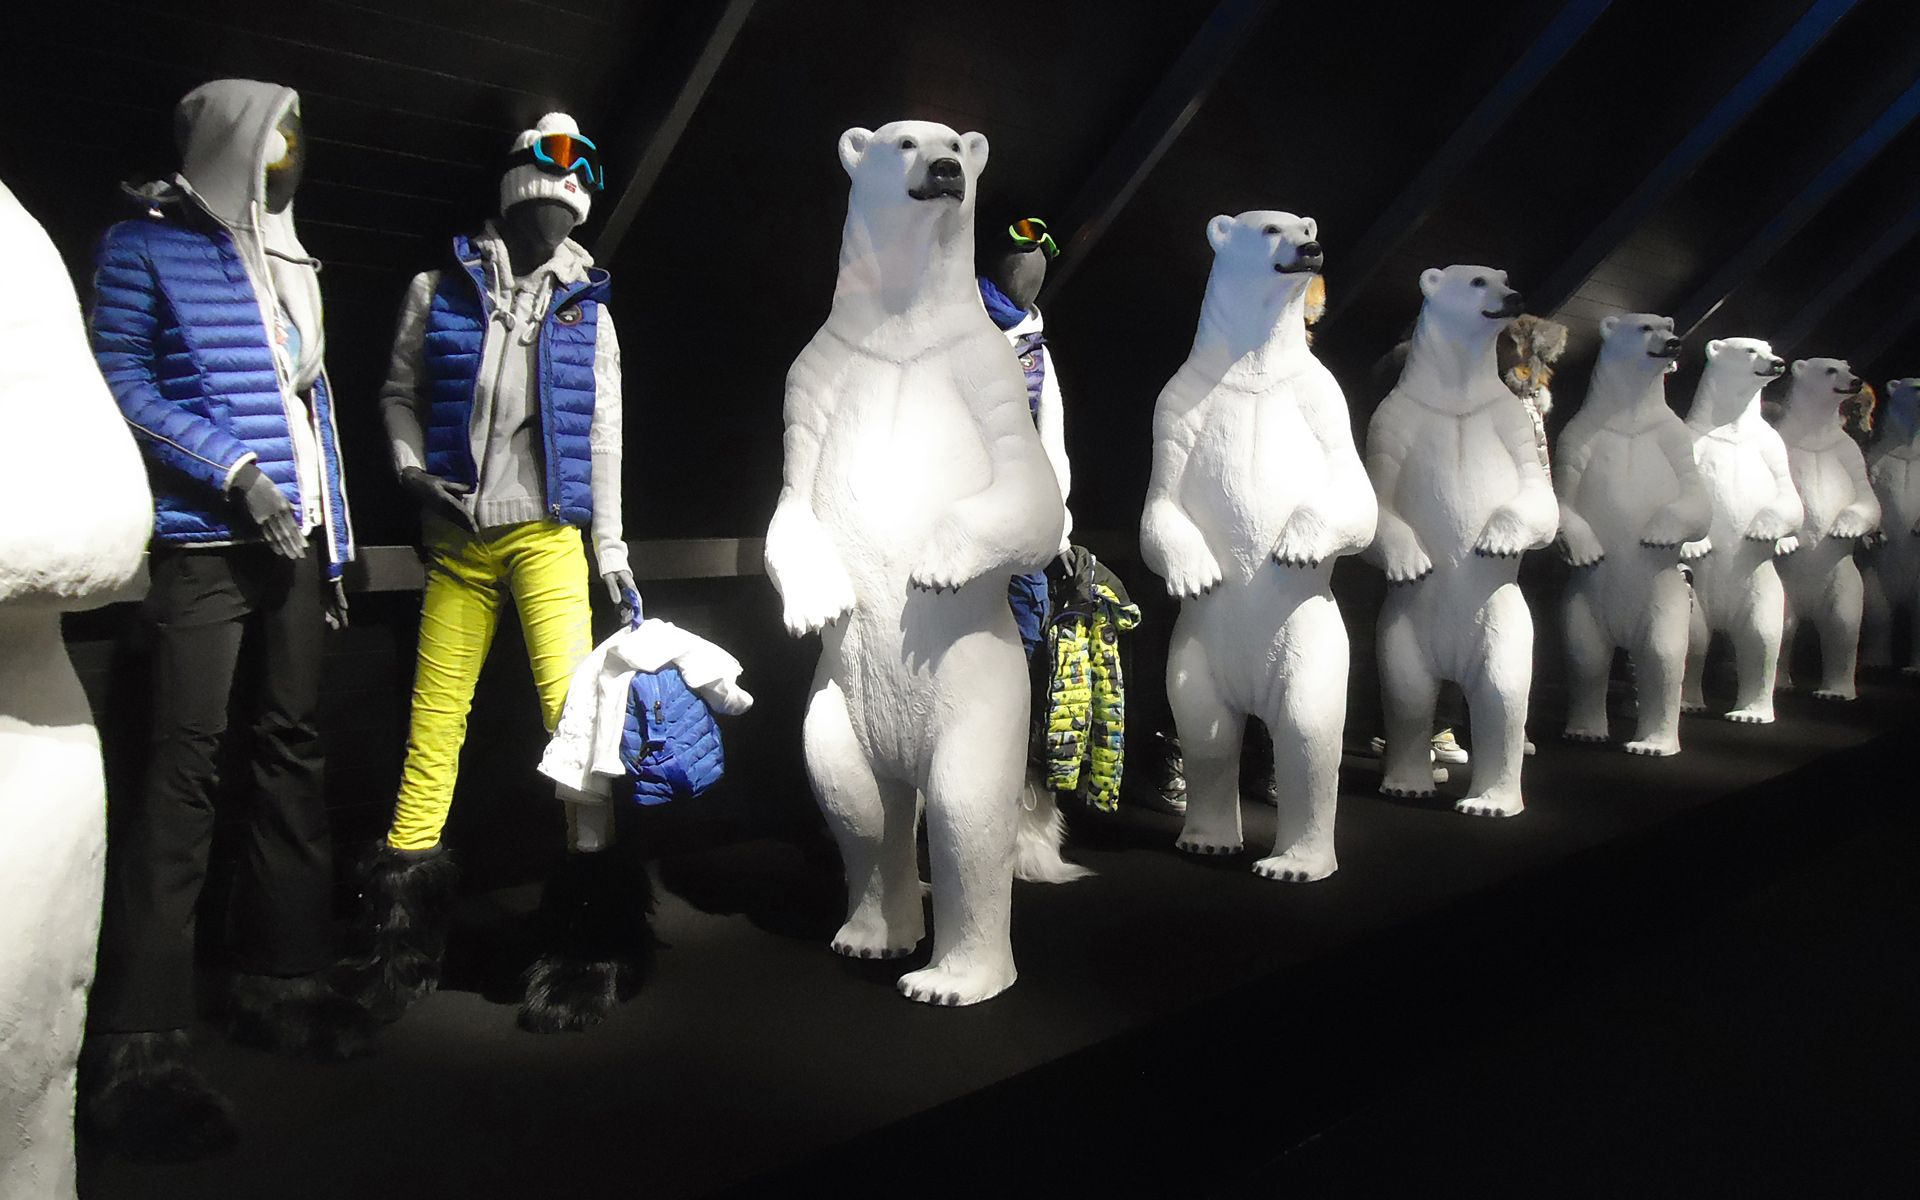 ISPO - Fall Winter 2014/15